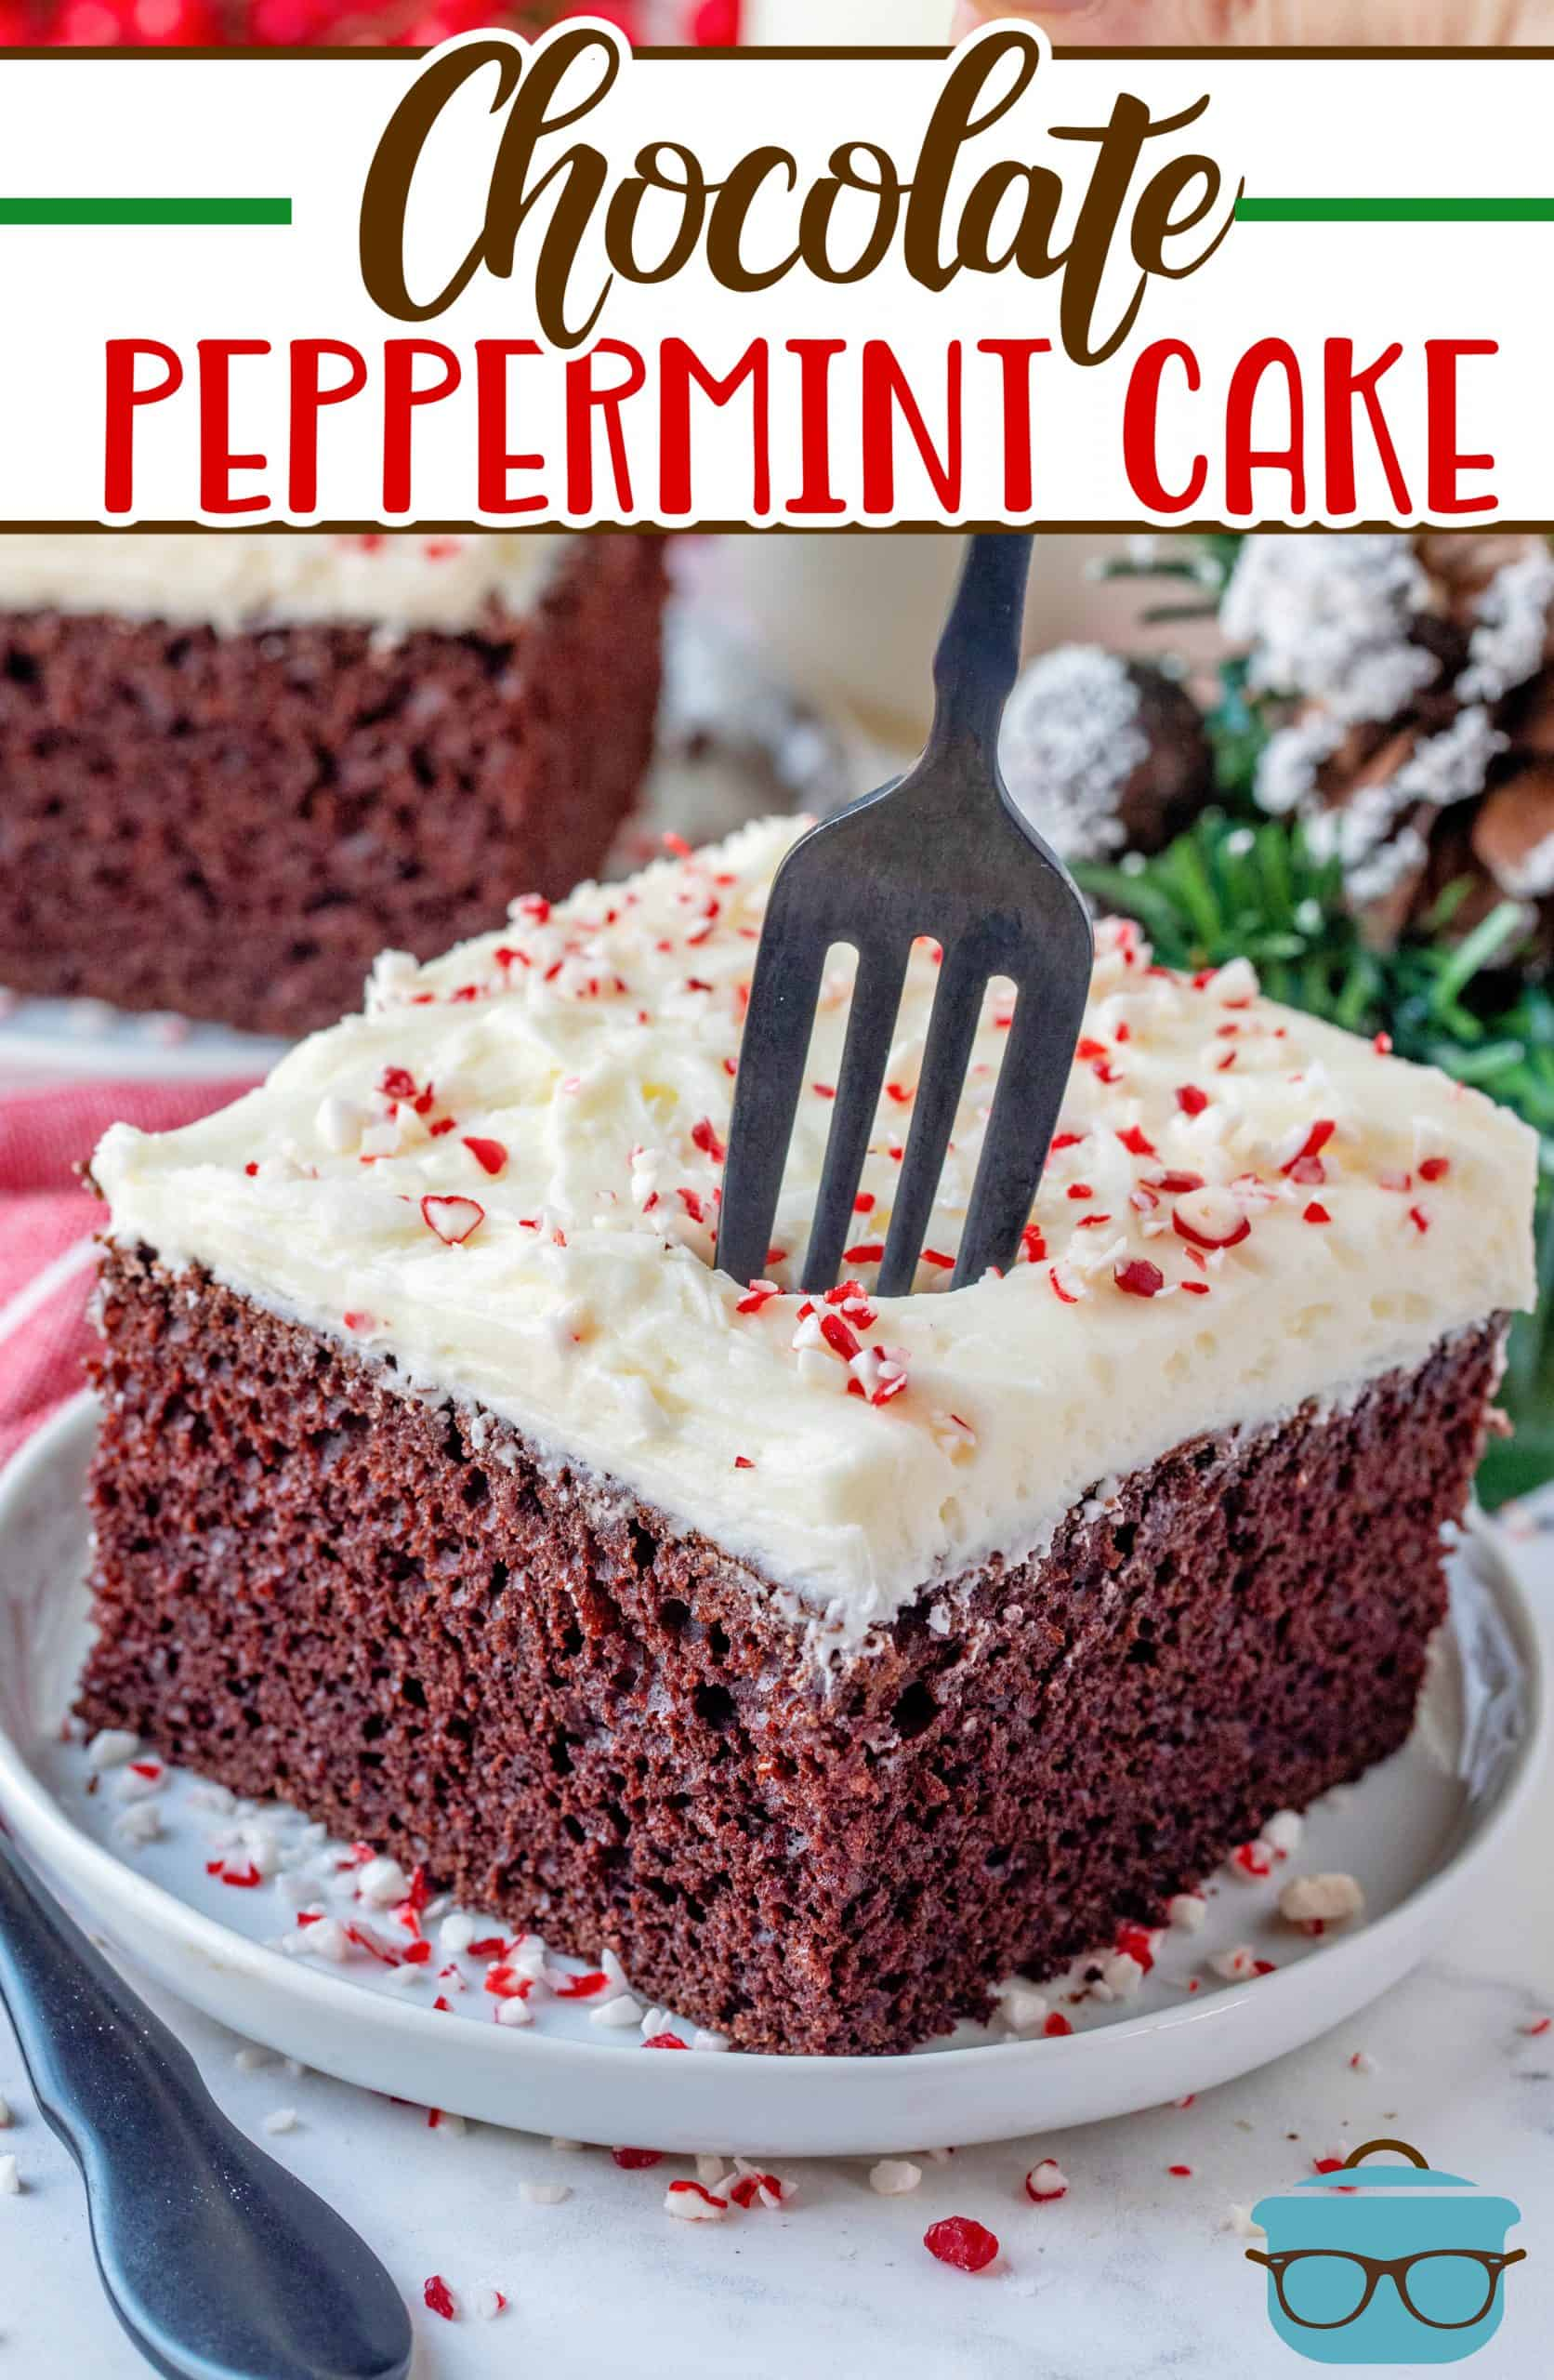 This Chocolate Peppermint Cake recipe is a homemade chocolate cake topped with a thick and creamy peppermint frosting!